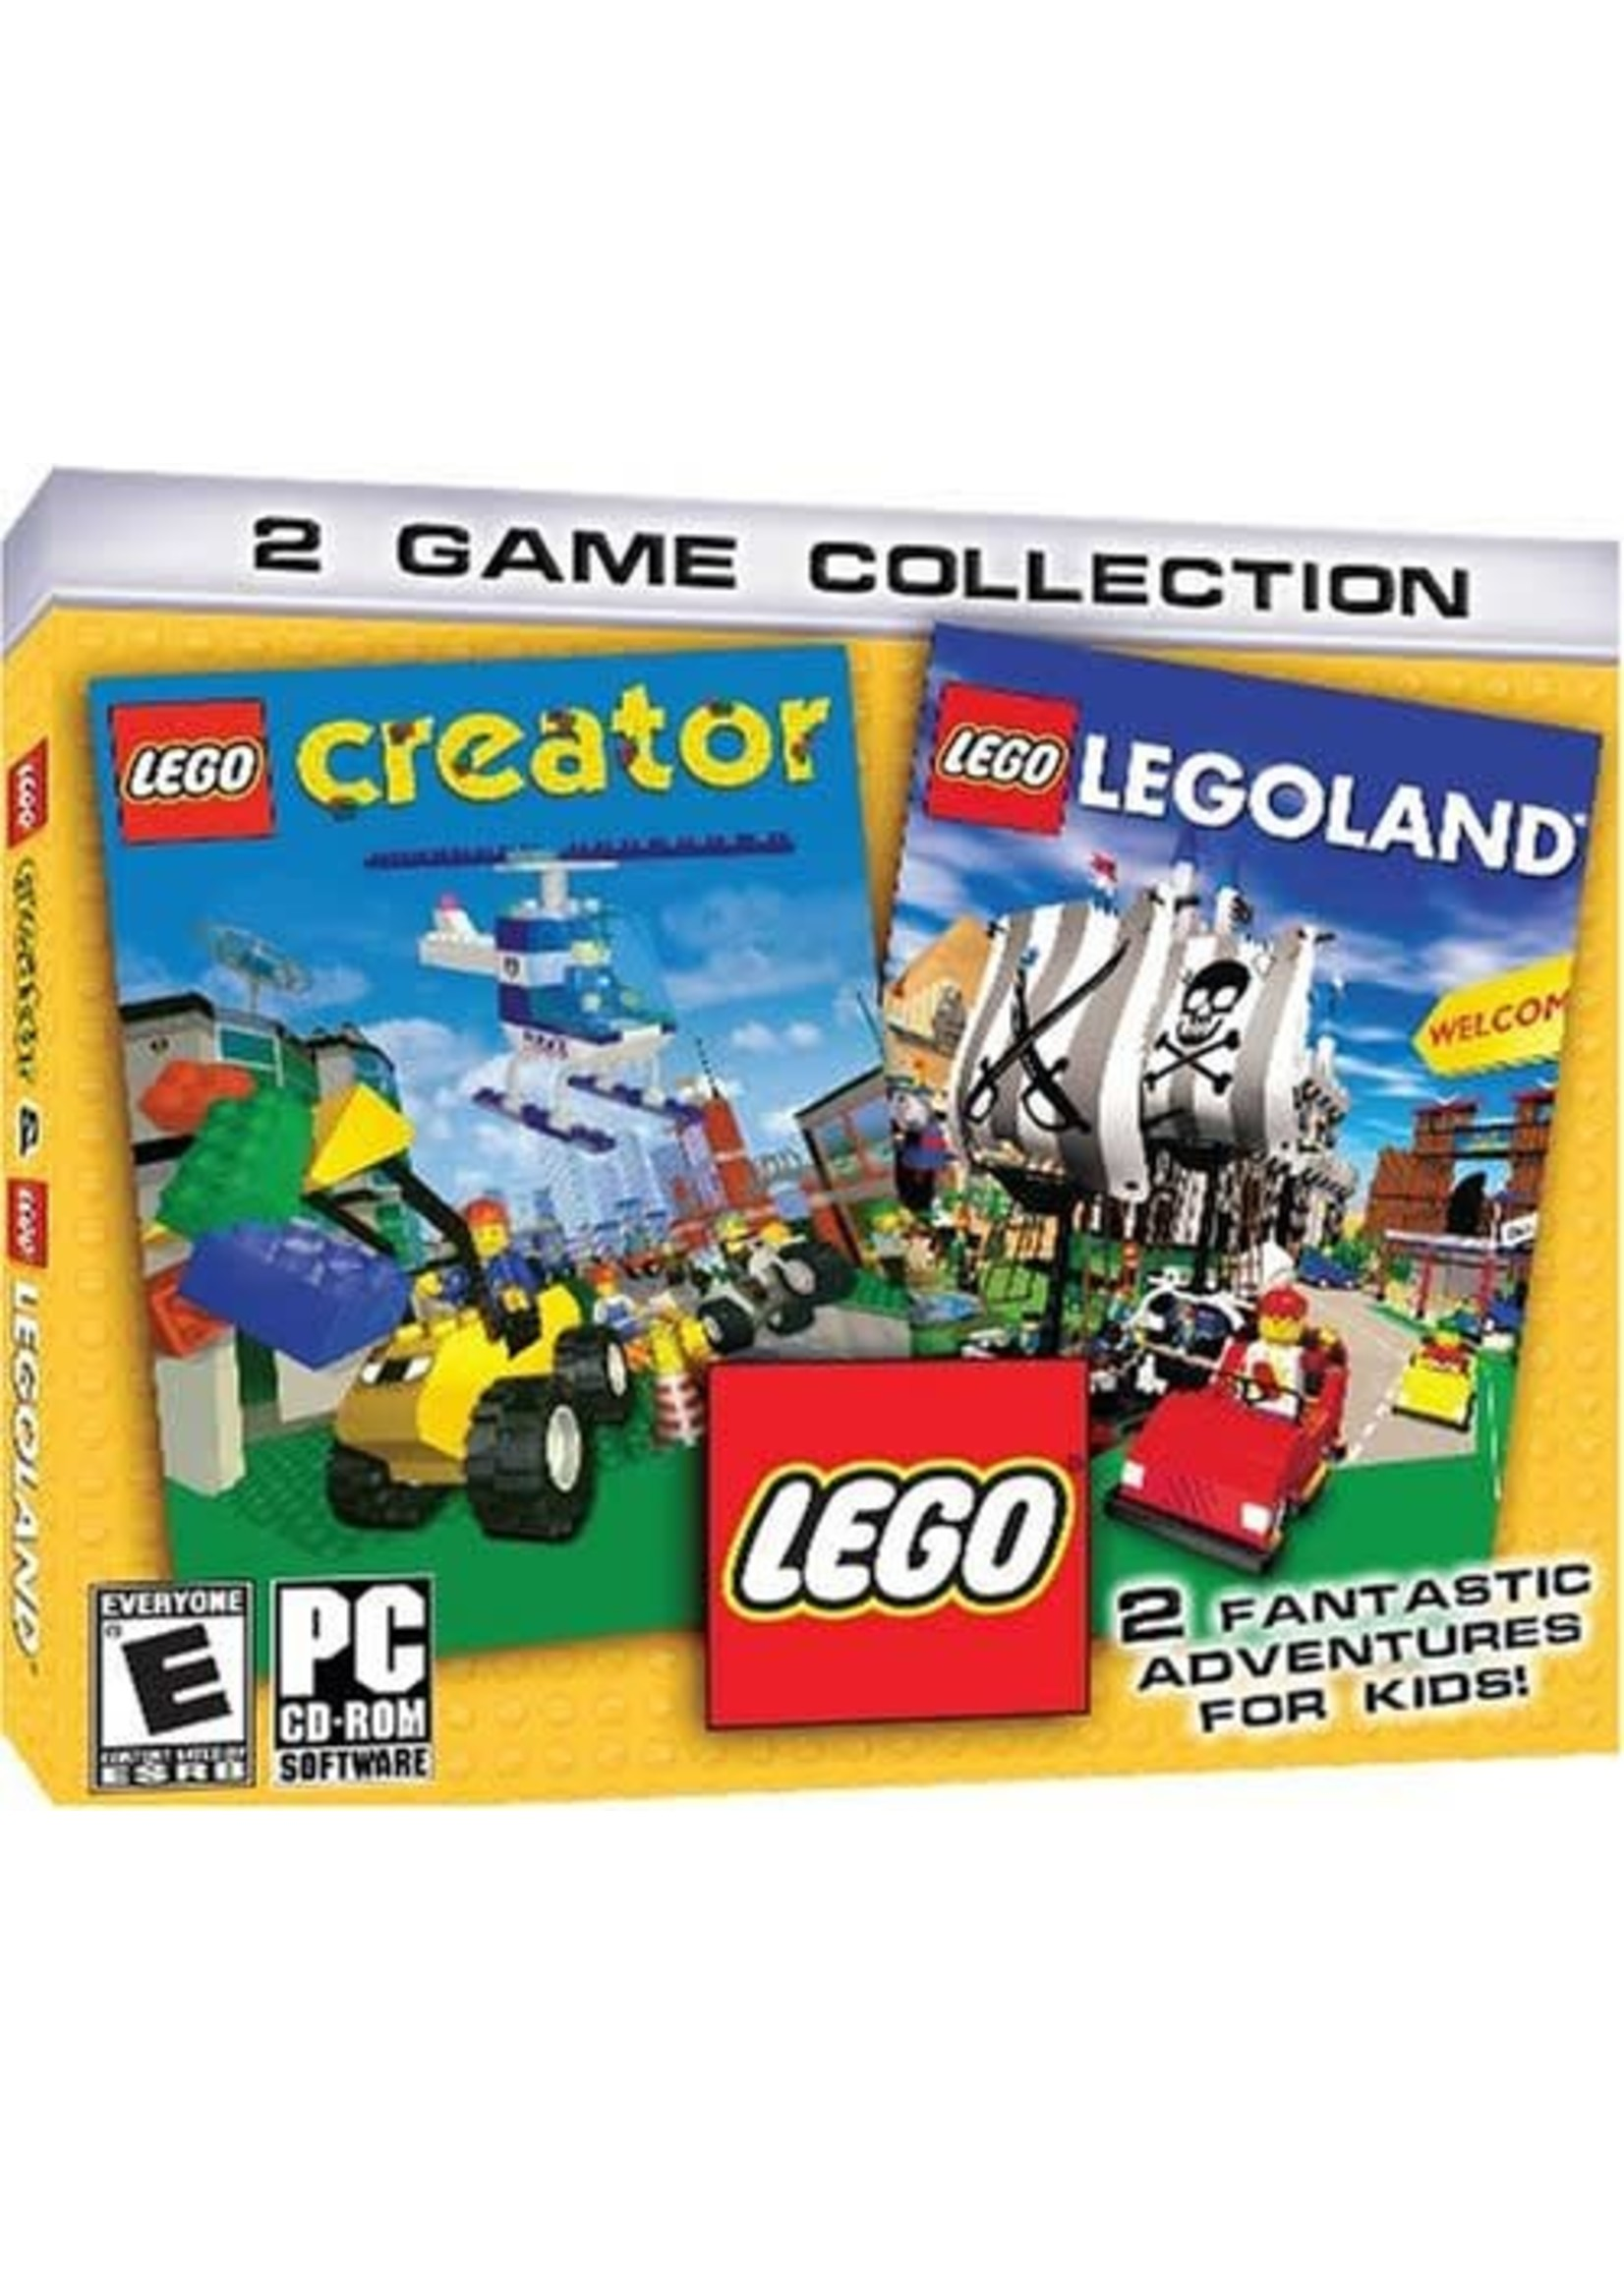 Lego Creator And Lego Land PC Games